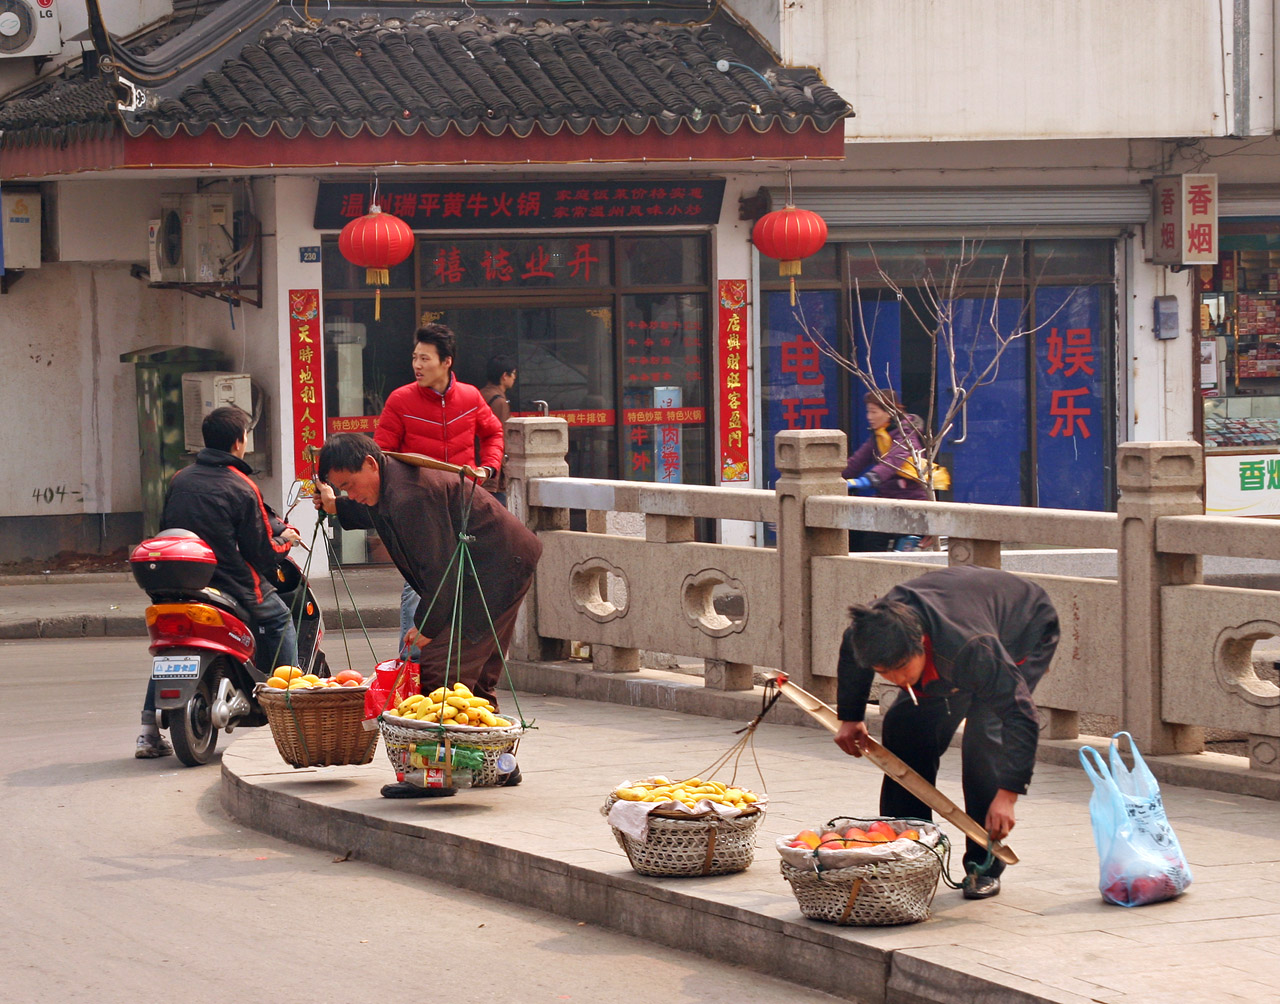 Getting Wares Ready-Shanghai,China